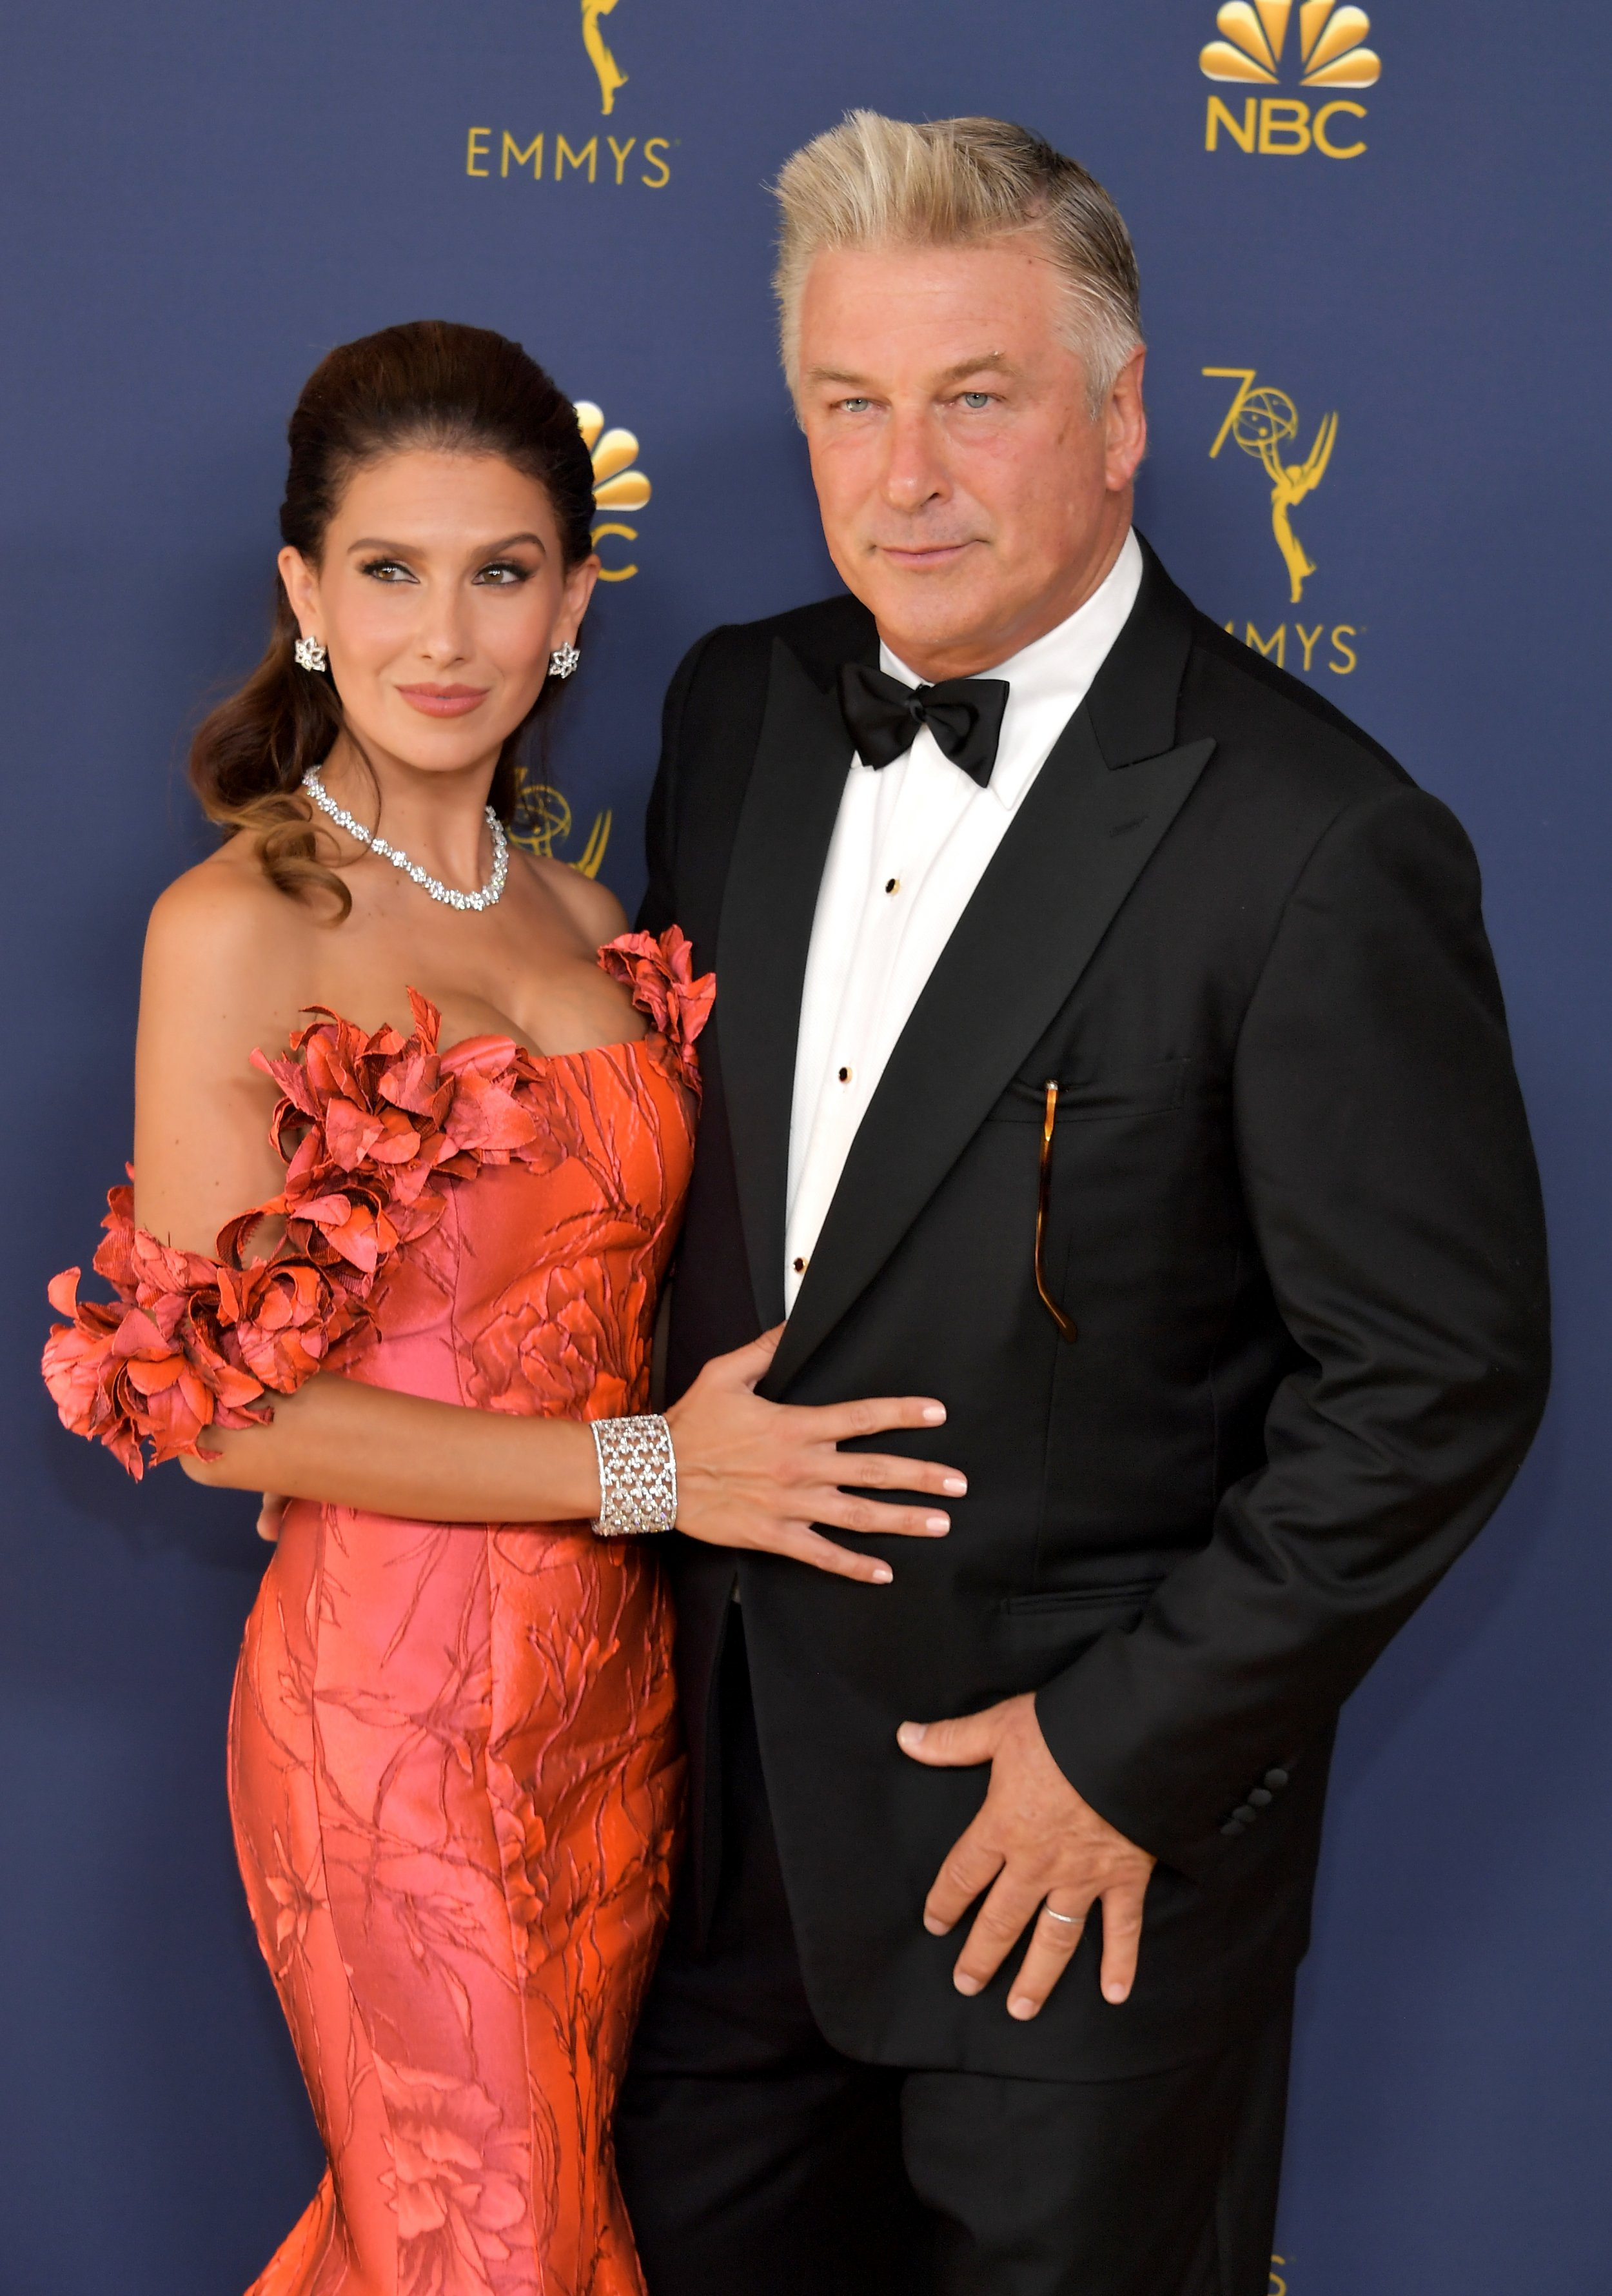 GettyImages-1035244750 Hilaria and Alec Baldwin